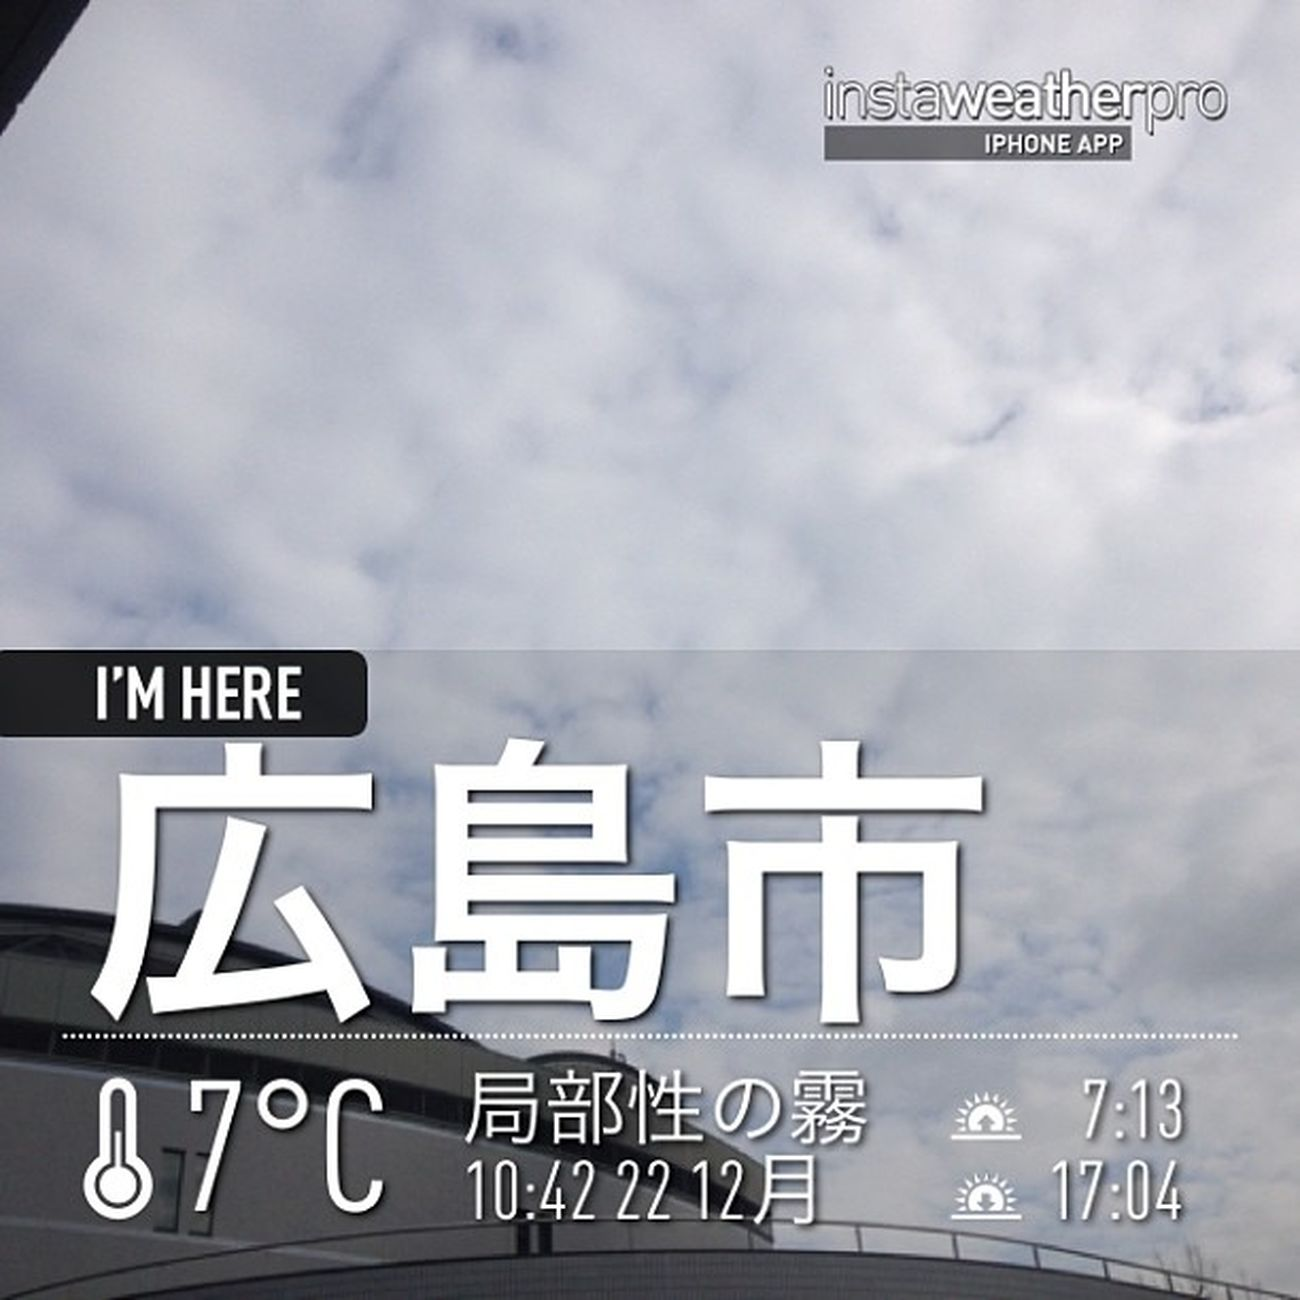 局部が霧らしい…\(^o^)/Weather Sky Instaweather Instaweatherpro Outdoors Nature 広島市 Hiroshimashi Japan Day Winter Rain Skypainters Cold Hiroshimaprefecture